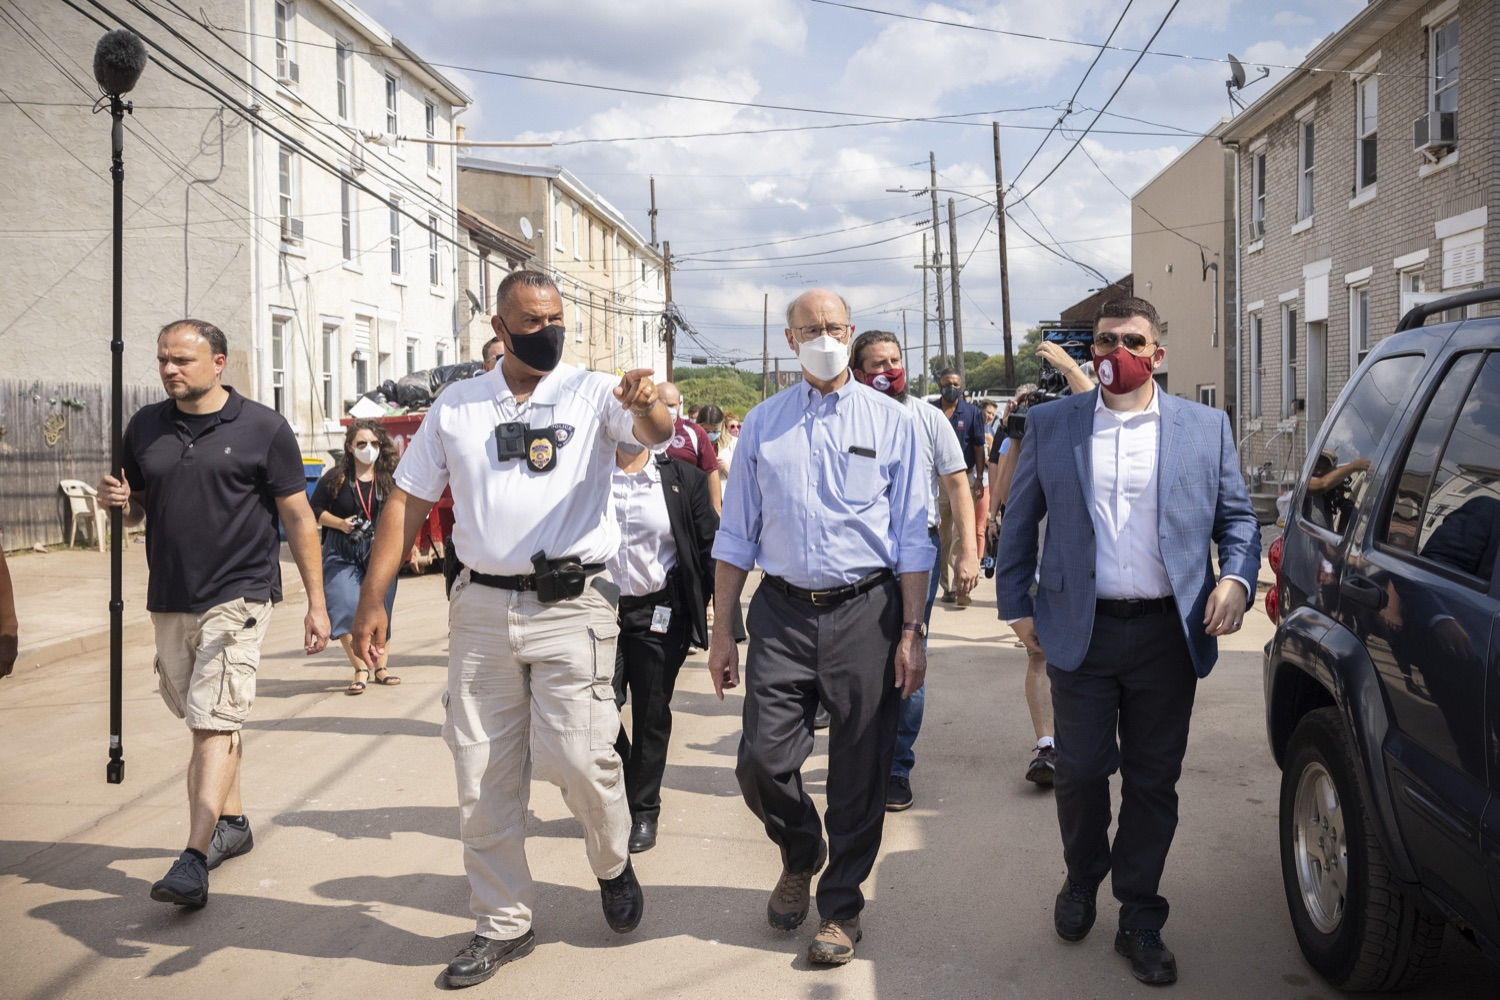 """<a href=""""https://filesource.wostreaming.net/commonwealthofpa/photo/19109_gov_stormDamage_dz_012.jpg"""" target=""""_blank"""">⇣Download Photo<br></a>Pennsylvania Governor Tom Wolf touring storm damage with Chief Todd J. Bereda,  Chief of Police, Emergency Management Coordinator Bridgeport PA.  Governor Wolf visited the Borough of Bridgeport to tour some of the areas affected by the remnants of Ida. The governor, joined by local officials, viewed and discussed the impact to damaged areas, including businesses, homes and infrastructure. Bridgeport, PA - September 08, 2021"""